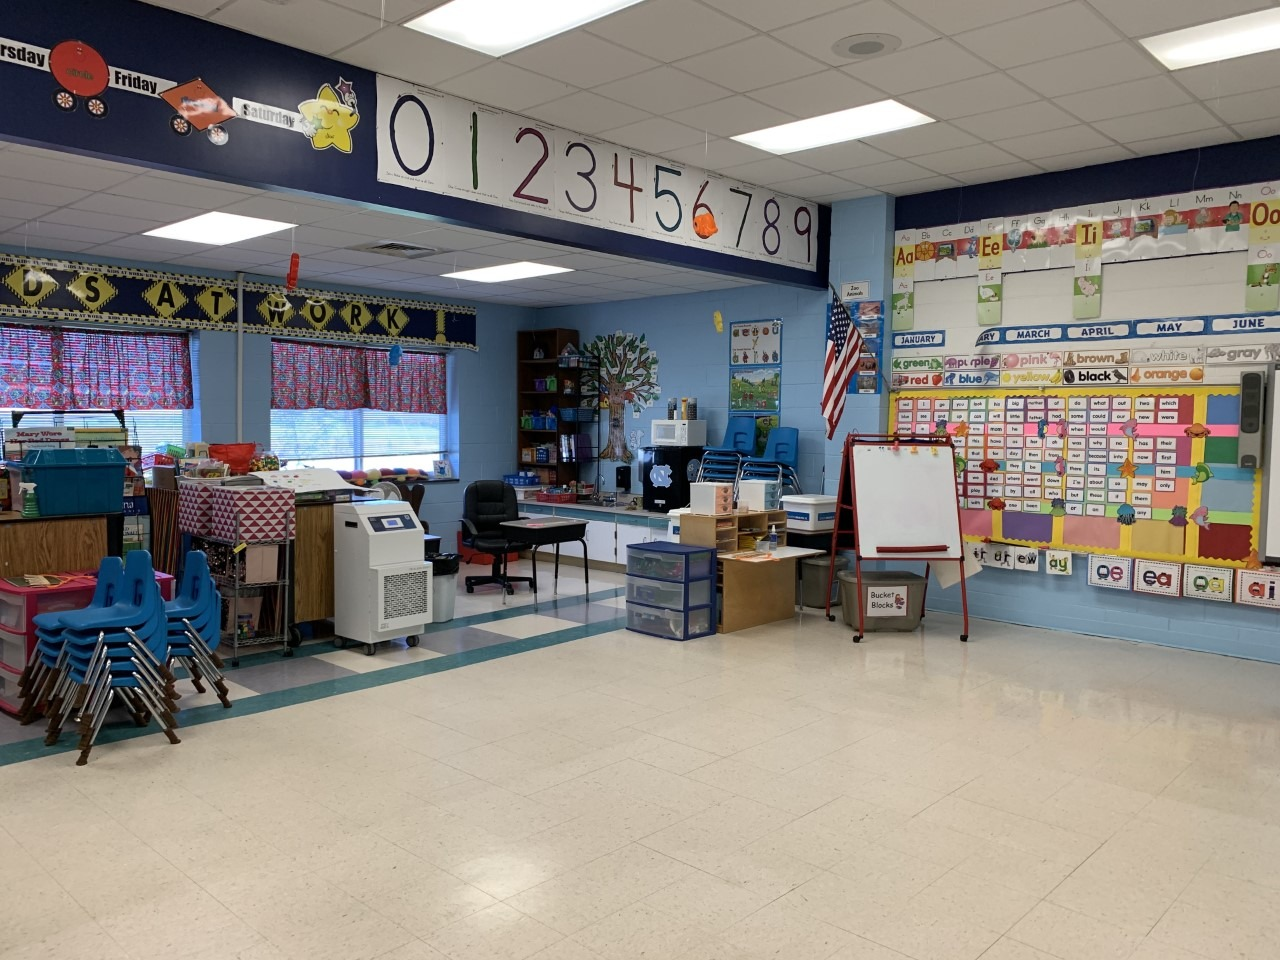 Air Filtration in Schools: Our Greatest Defense Against Covid-19